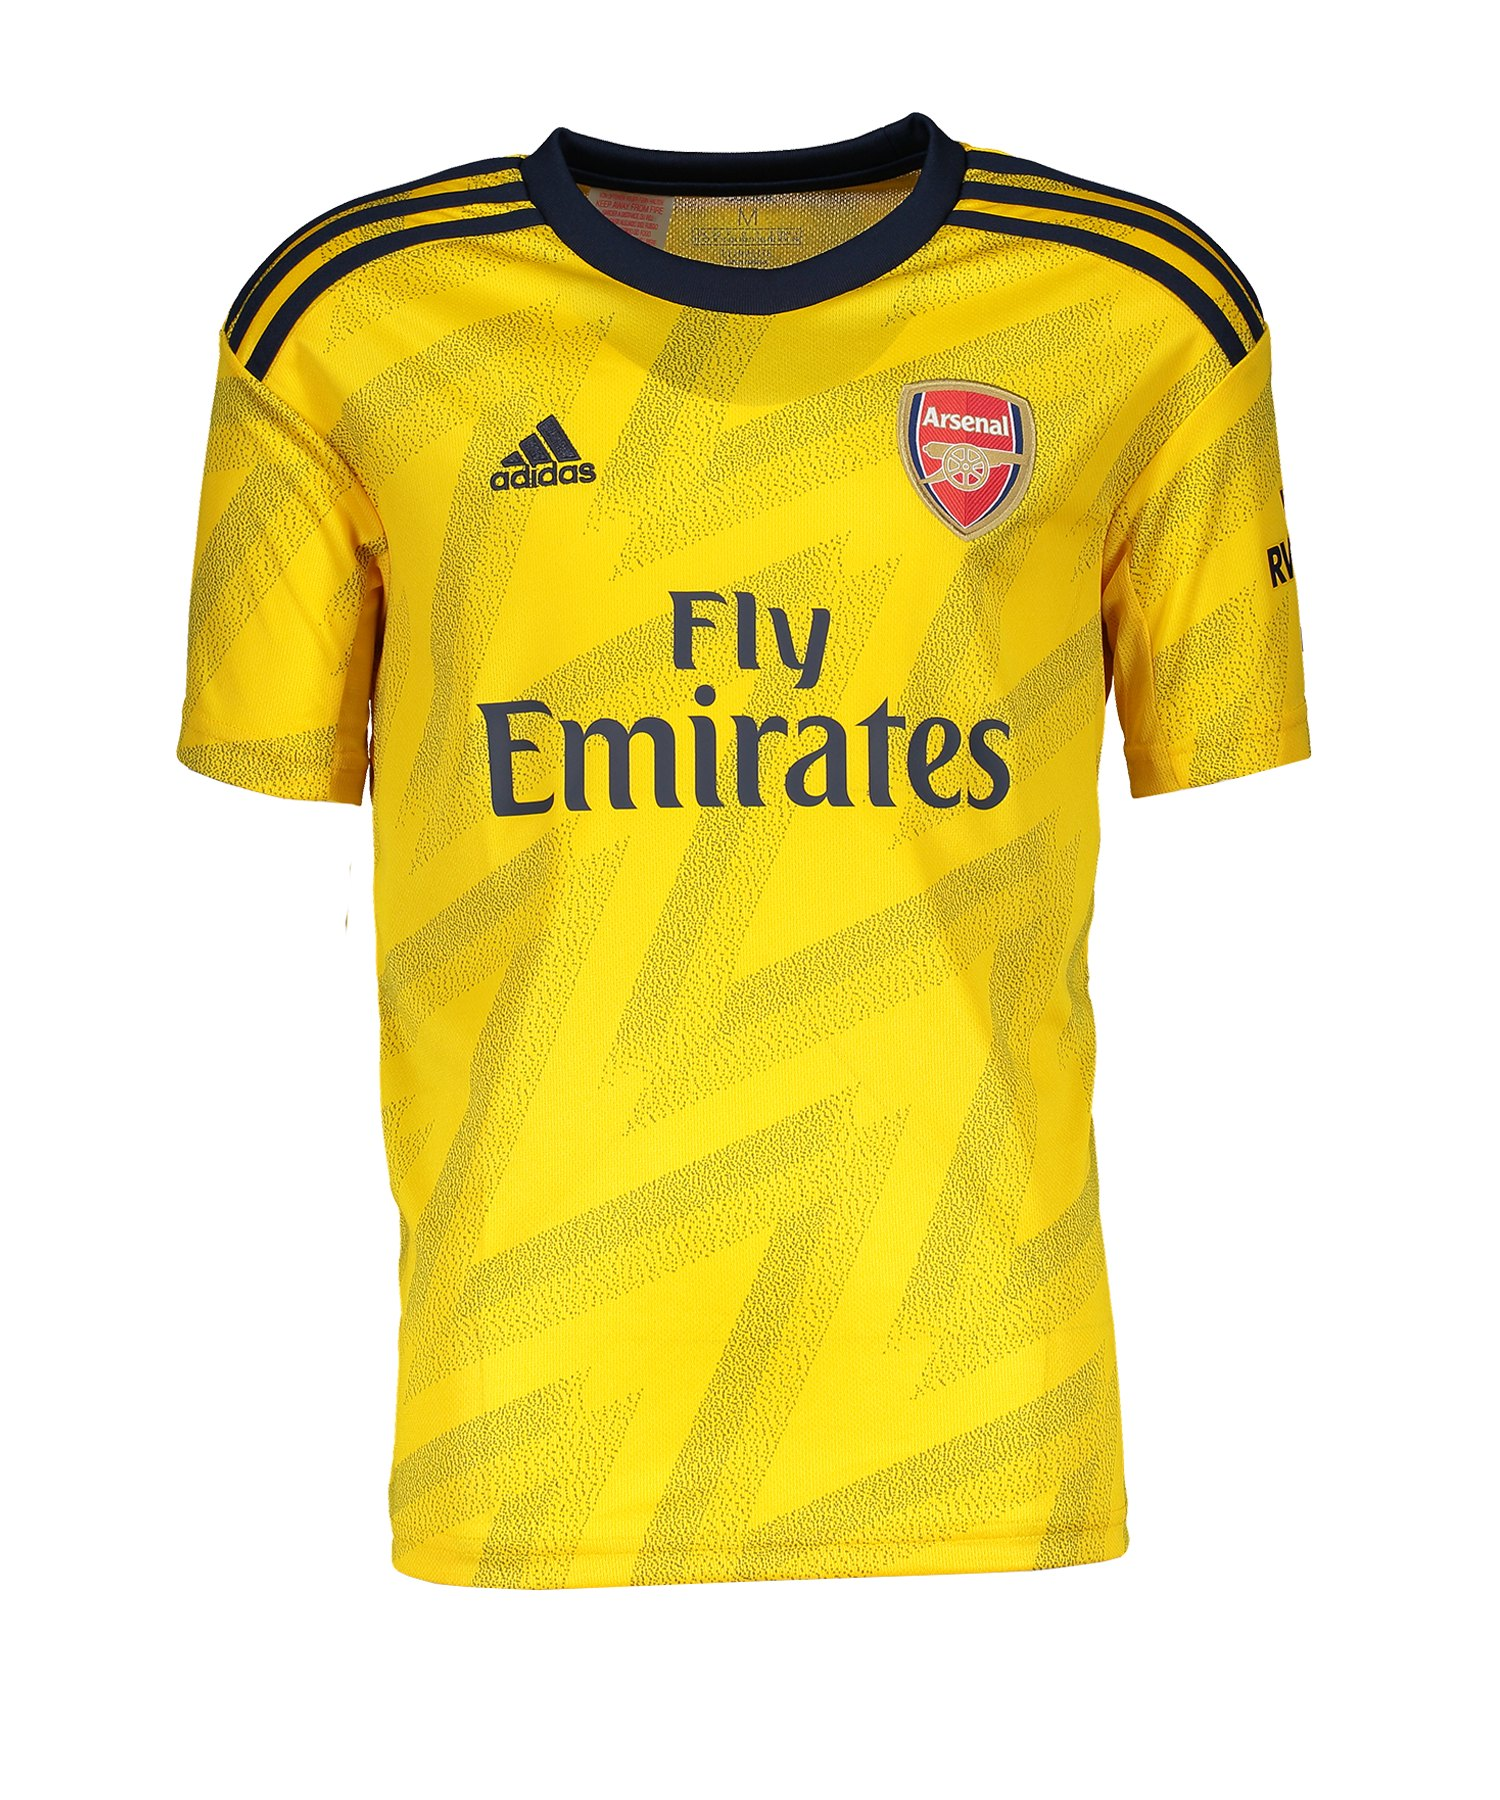 adidas FC Arsenal London Trikot Away Kids 2019/20 - gelb